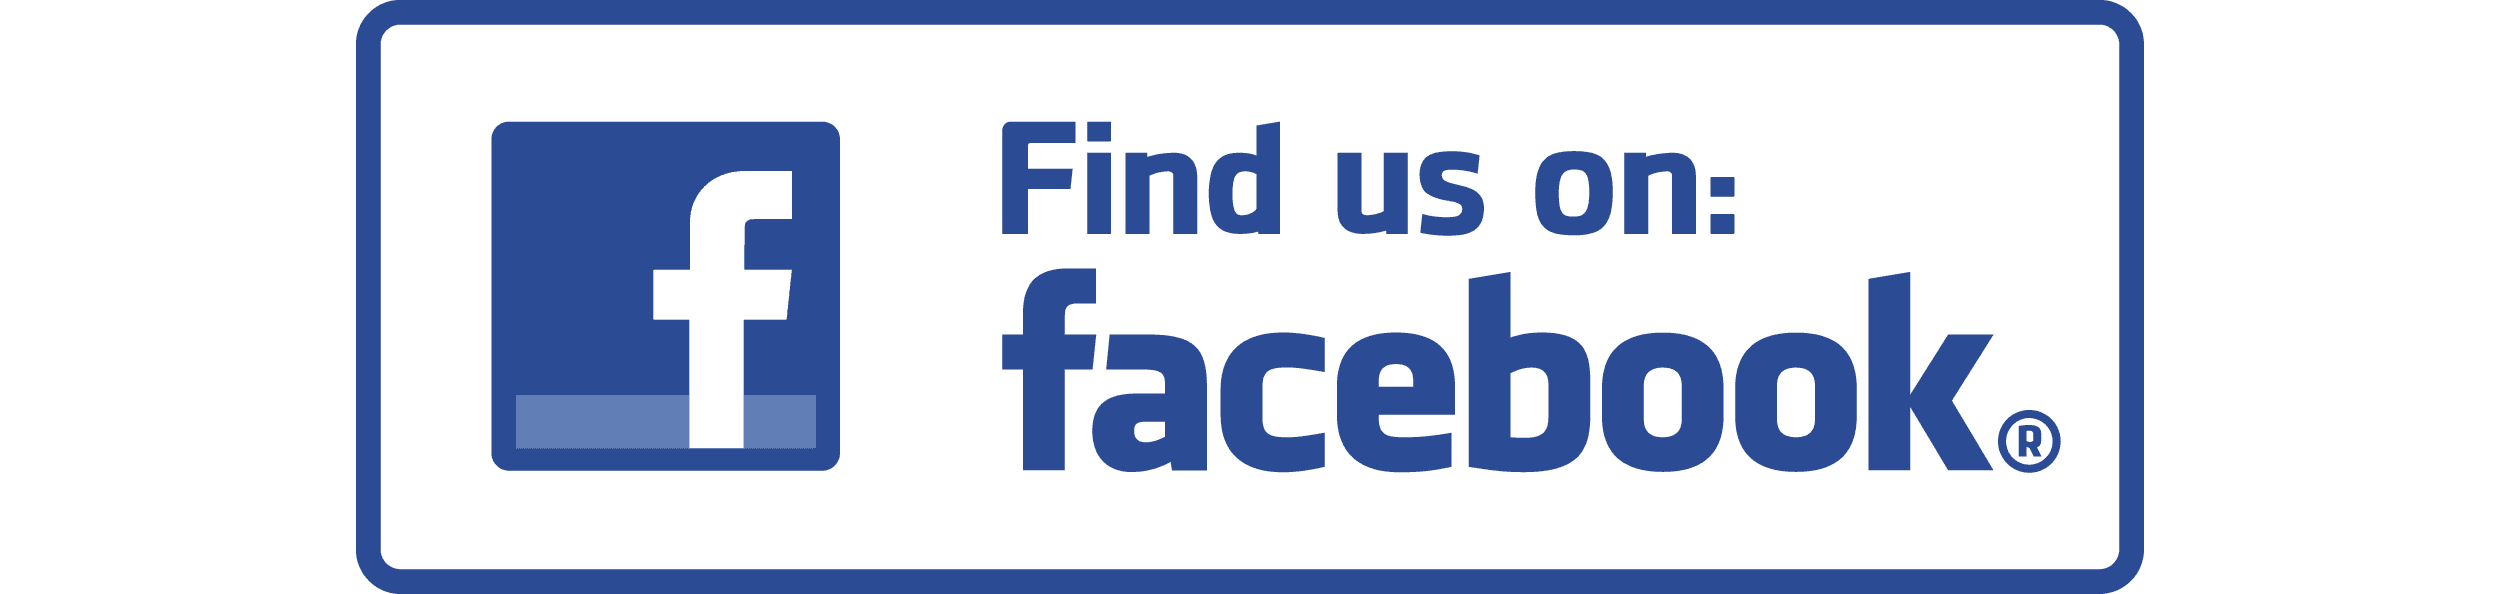 Button---Find-Us-On-Facebooklong